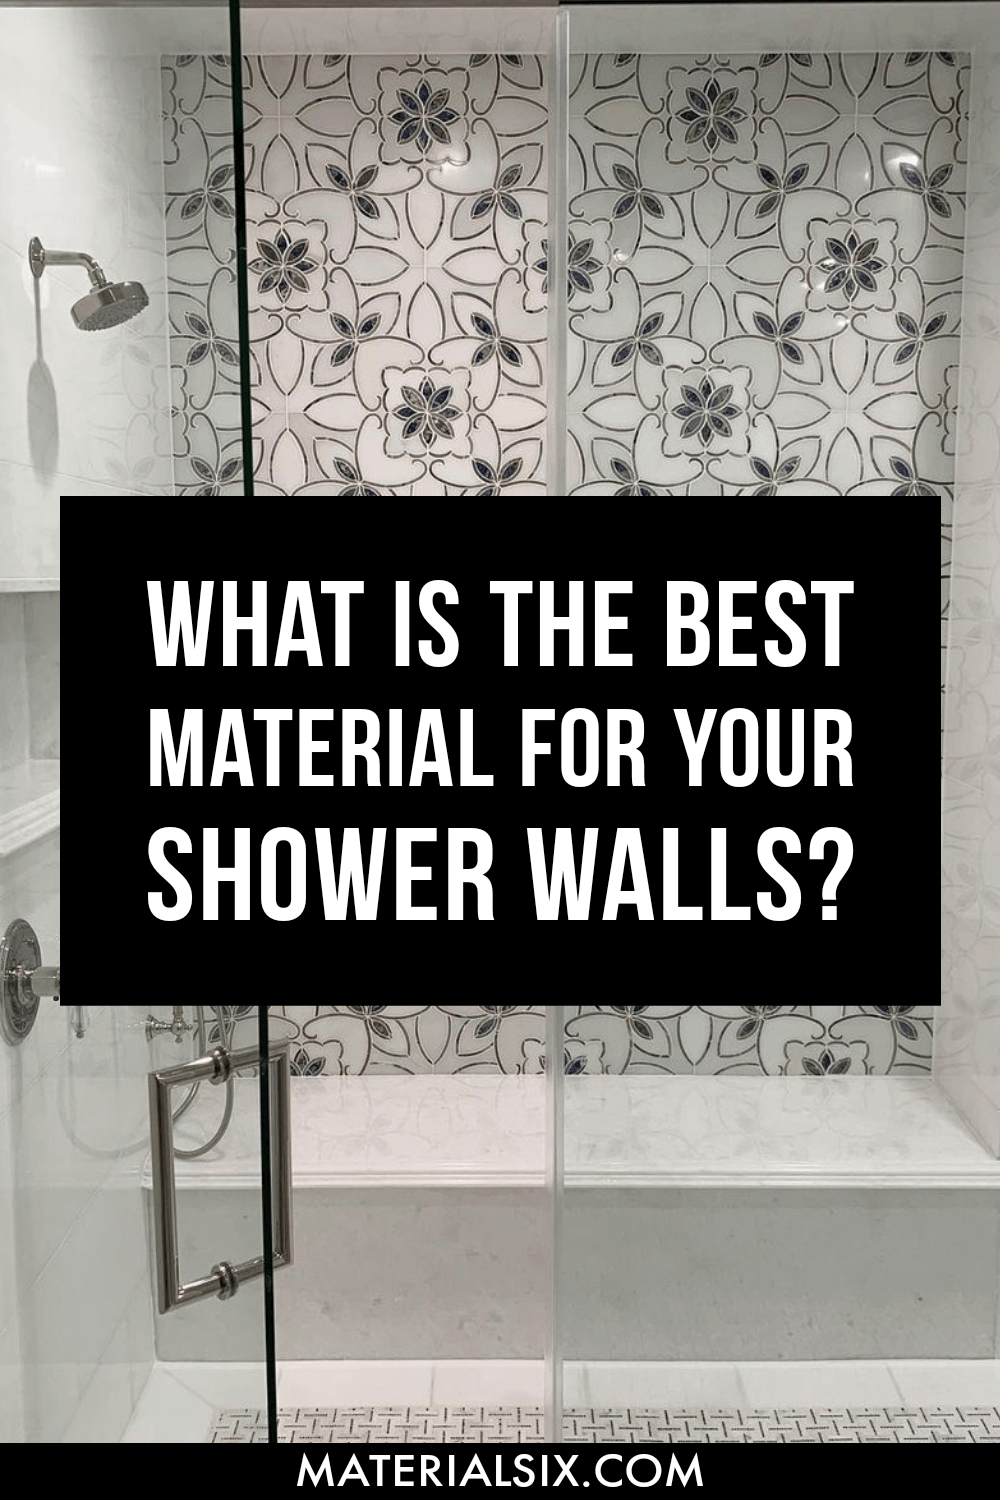 What is the best material for your shower walls?